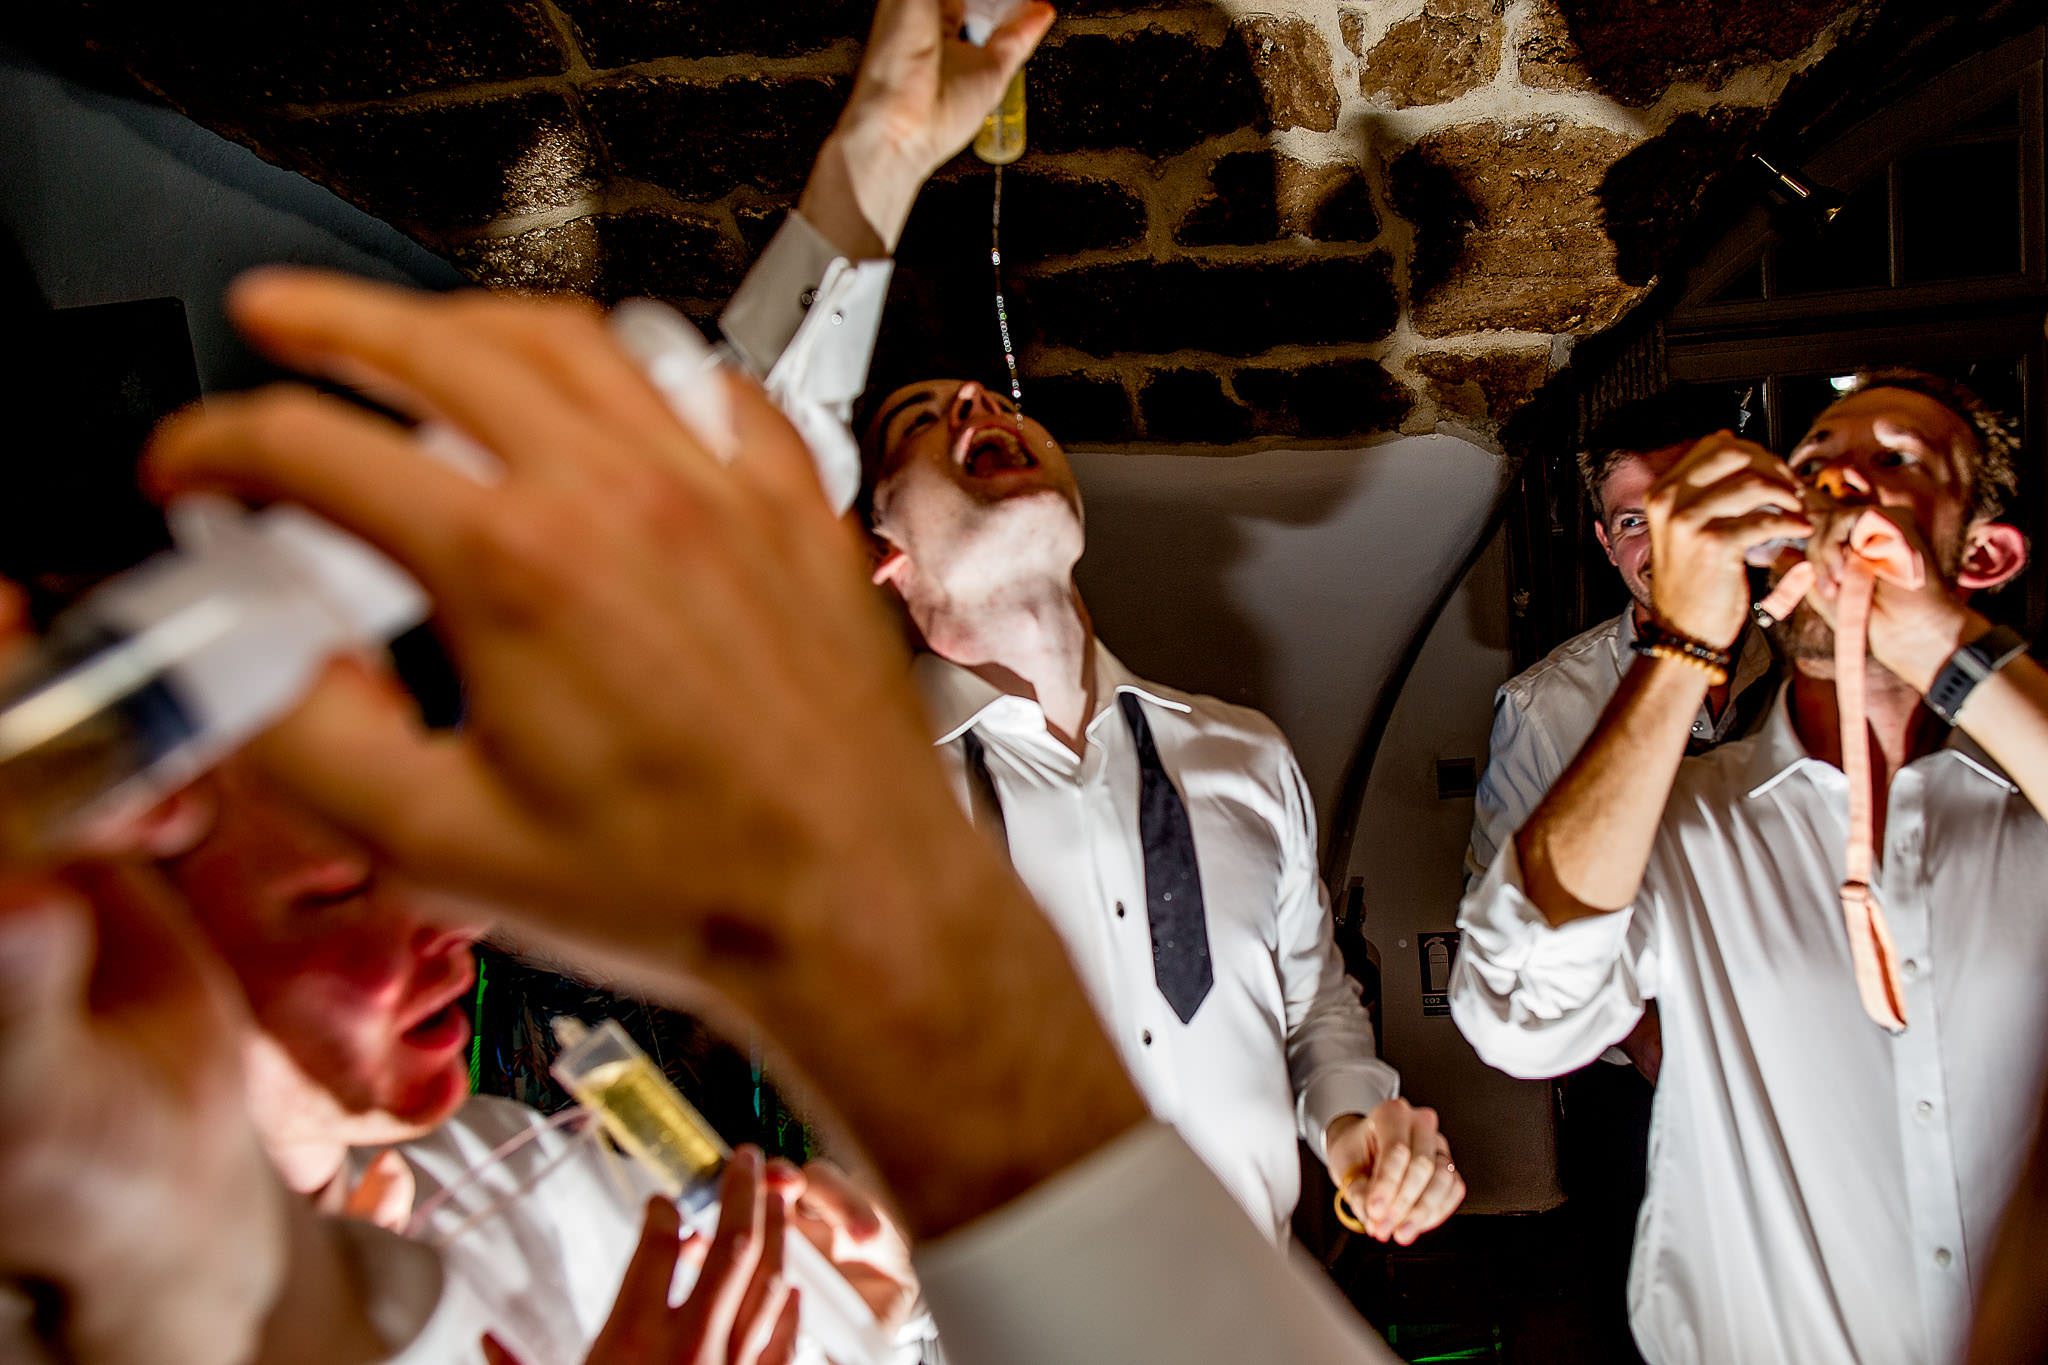 Groomsmen laughing with surrenges spurting with tequilla at chateau wedding in Cirque de Navacelles outside Montpellier France